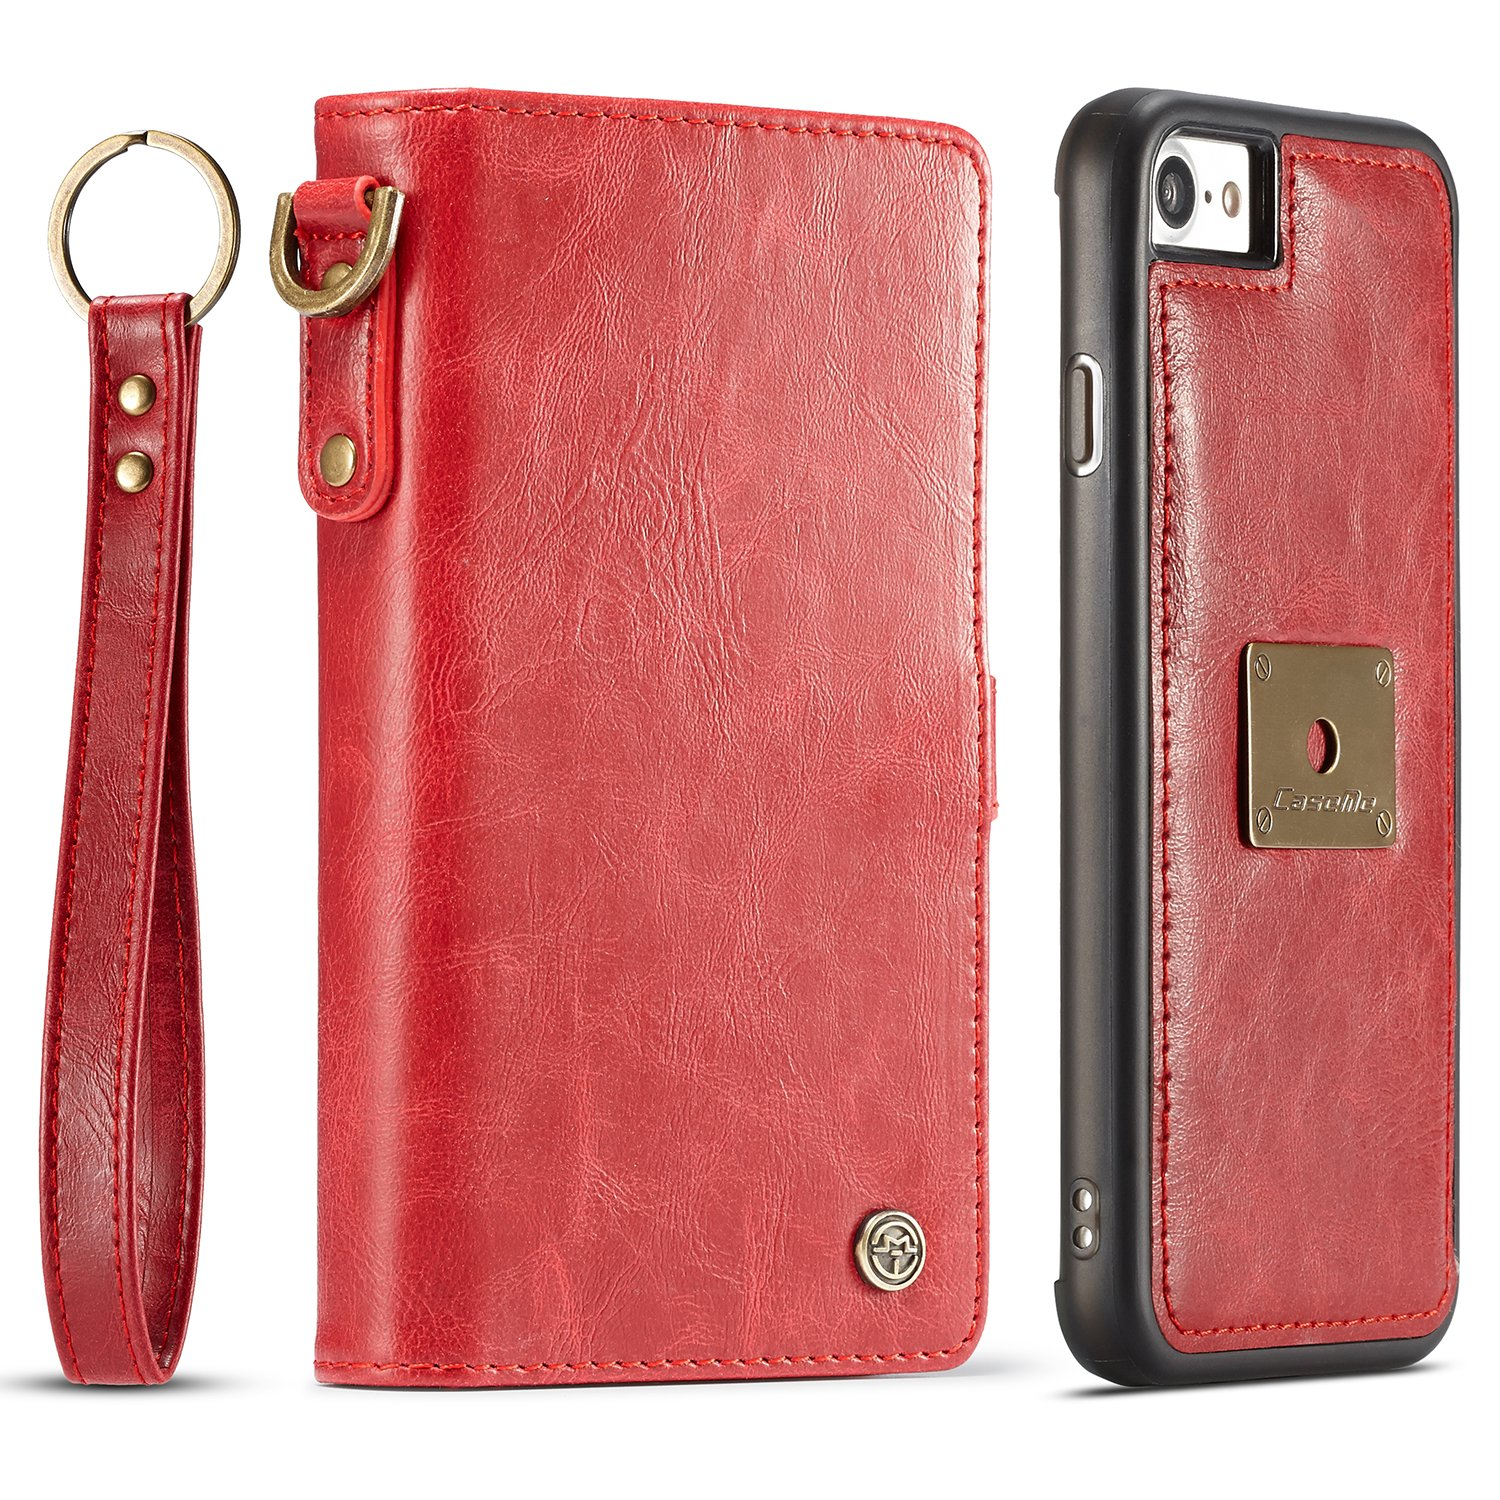 SAVYOU iPhone 7 4.7inch Folio Flip Leather Wallet with Detachable Magnetic Removable Slim Case - Card Slots Hoder Red 4335456105